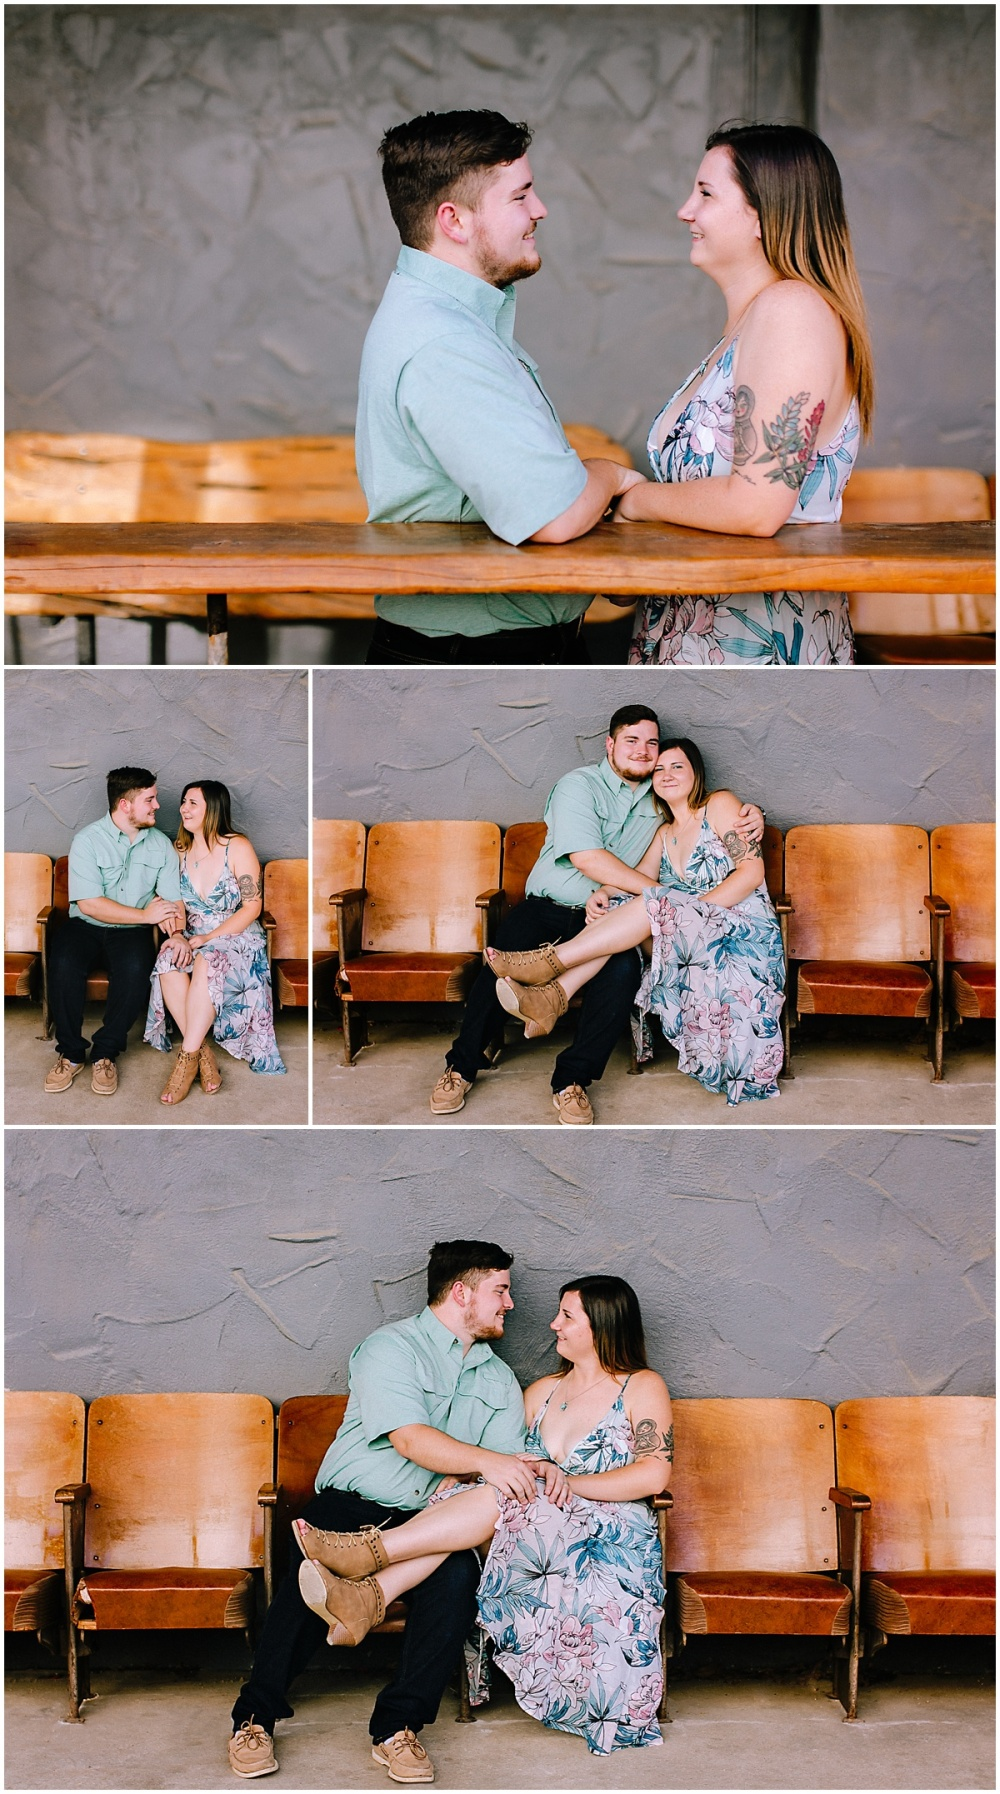 Engagement-Portraits-Couples-New-Braunels-Downtown-Carly-Barton-Photography-Wedding-Photographer-Gruene-Texas_0009.jpg